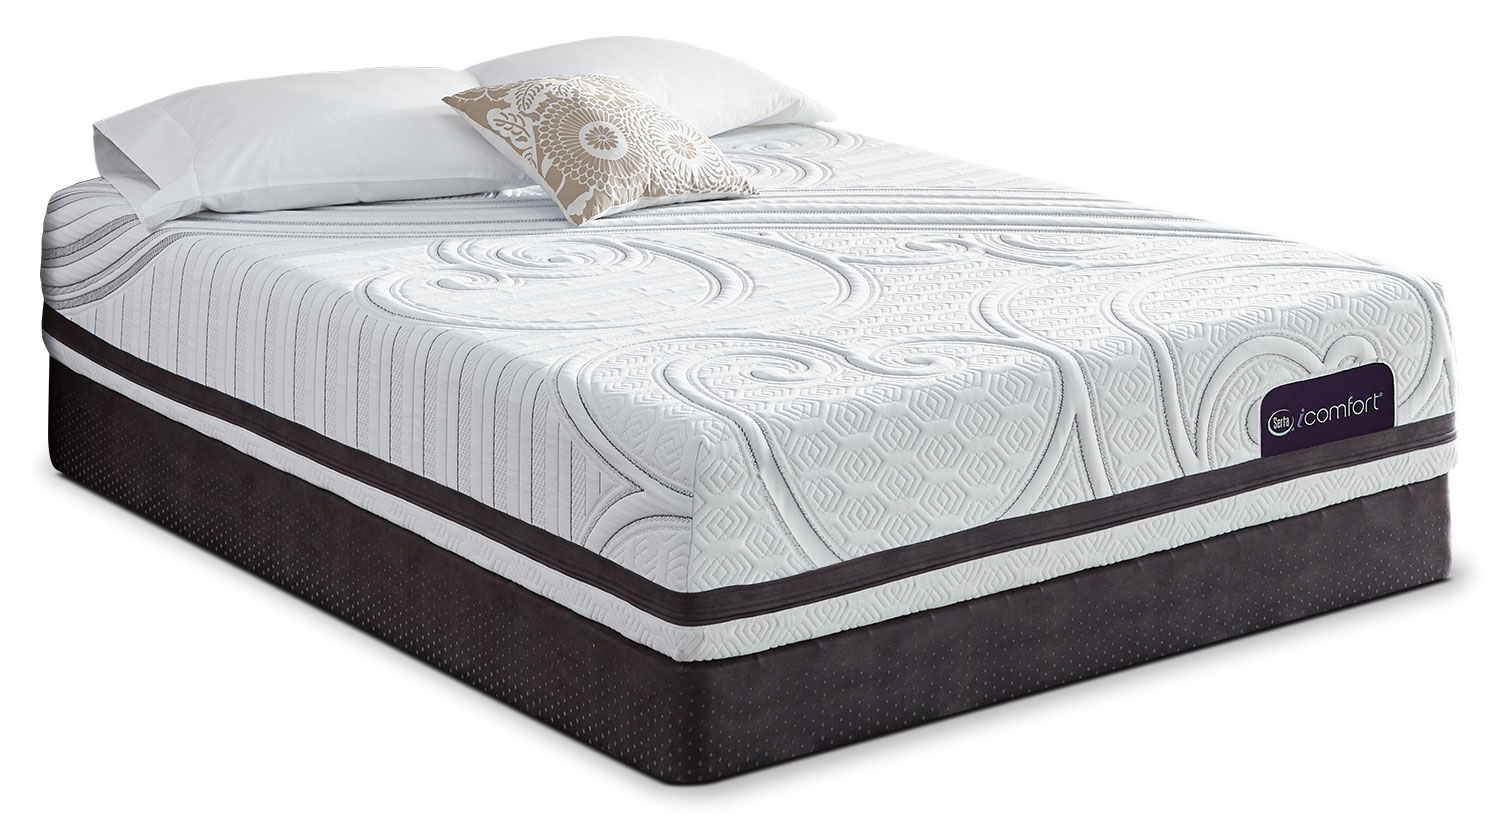 Serta iComfort Visionary Firm 2 Full Mattress Set